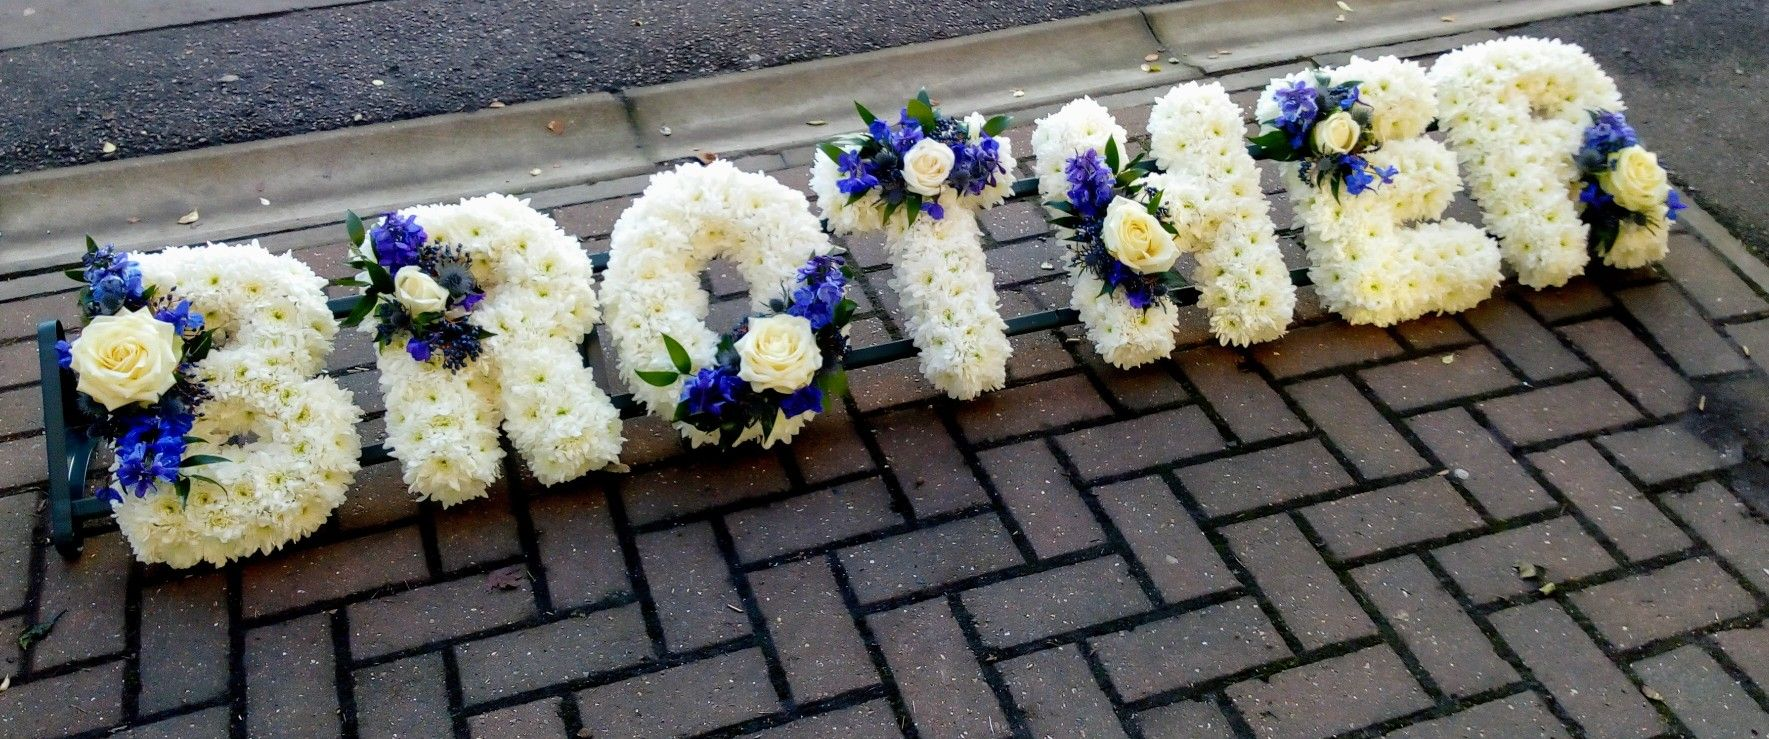 Brother Funeral Tribute My Flowers Pinterest Funeral Tributes